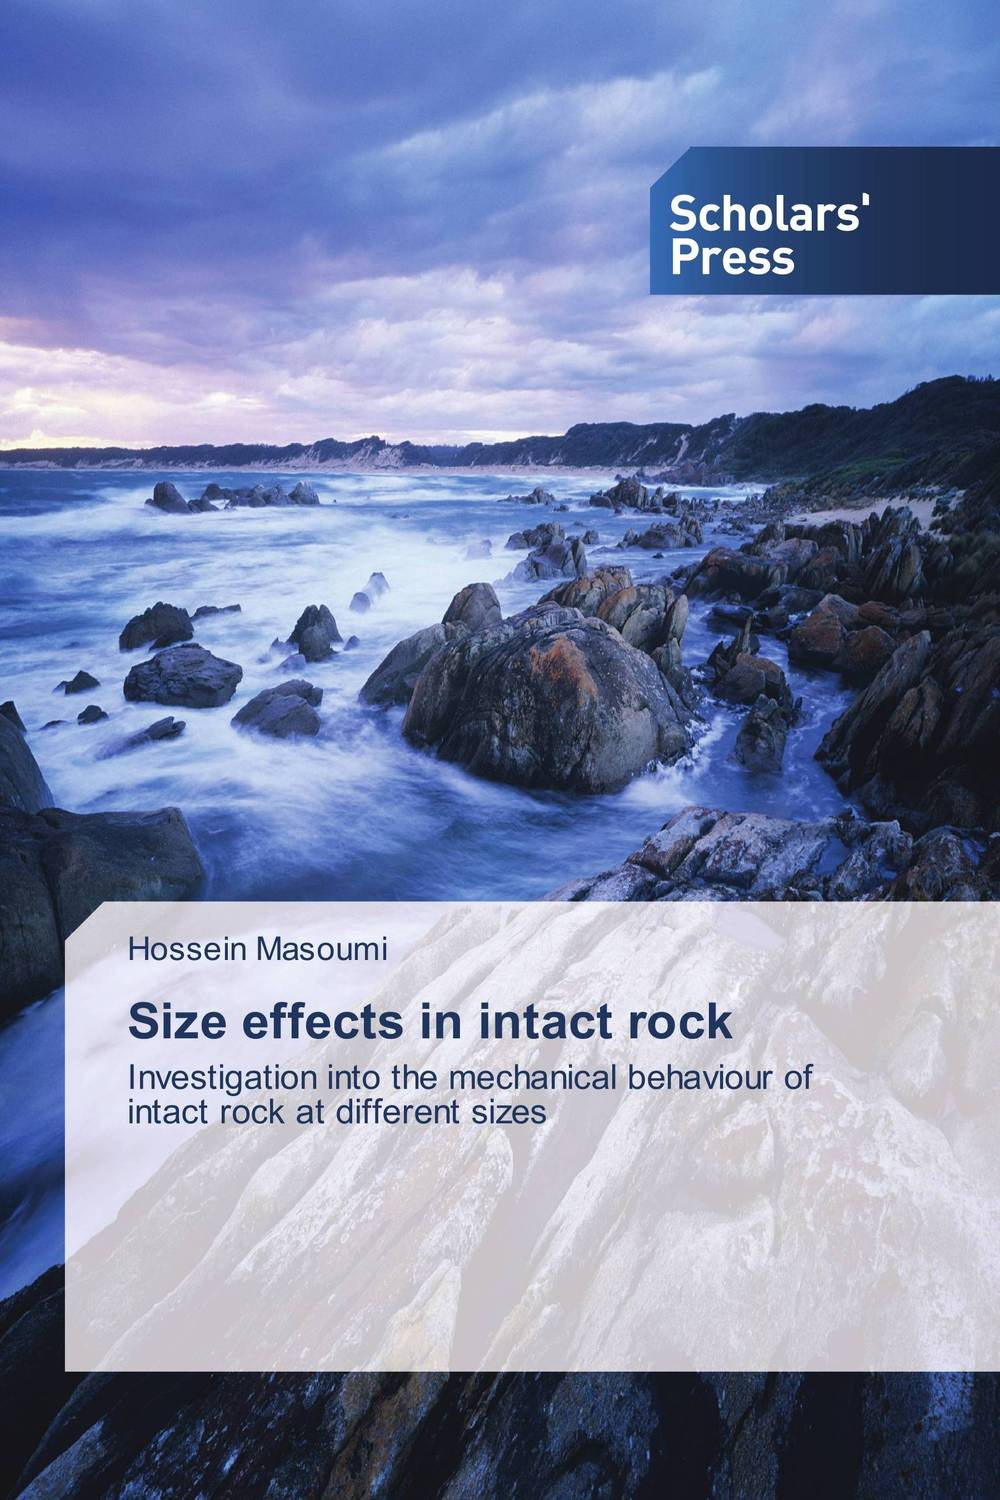 Size effects in intact rock treatment effects on microtensile bond strength of repaired composite